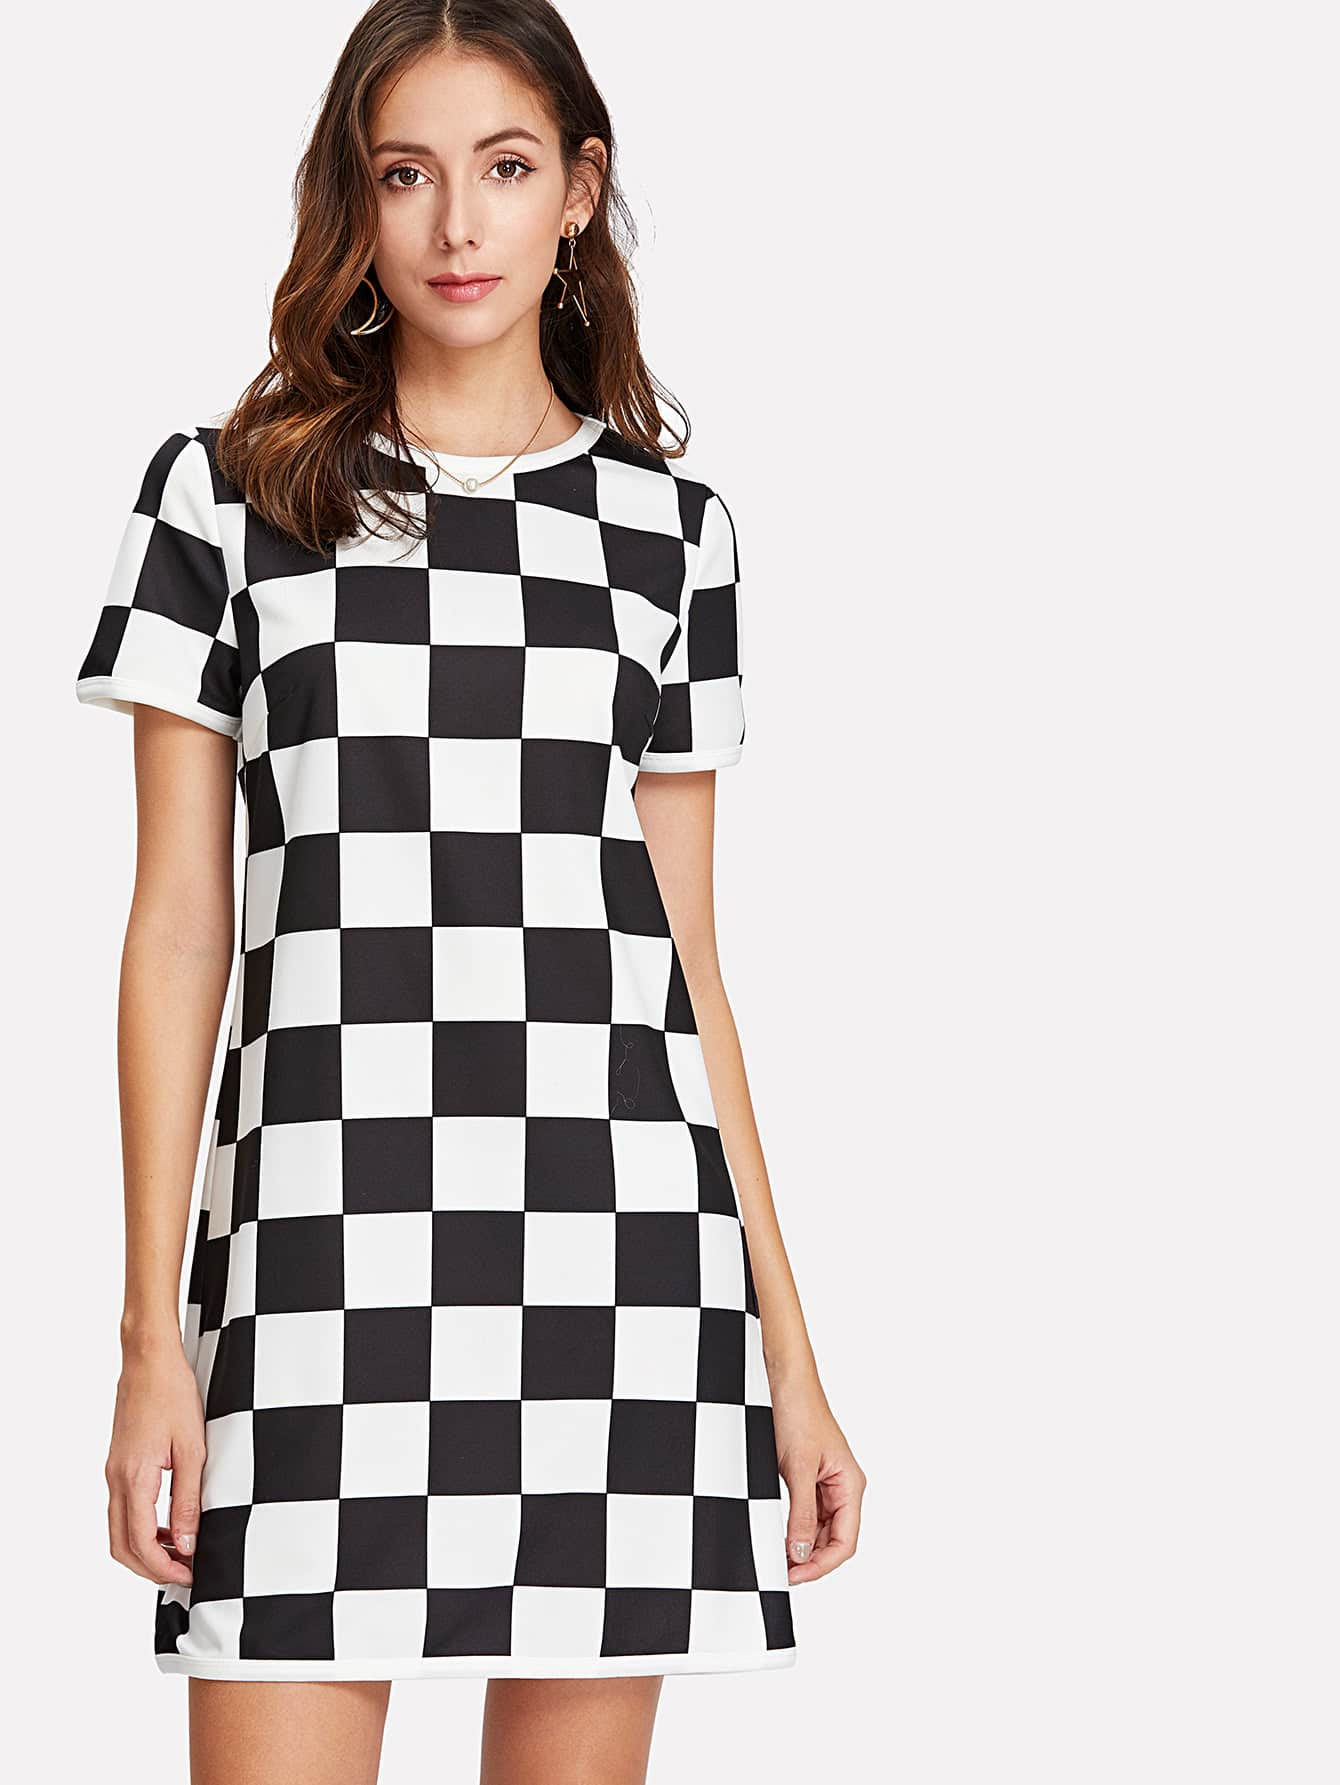 6982c73962 Short Sleeve Checkered Dress | SHEIN